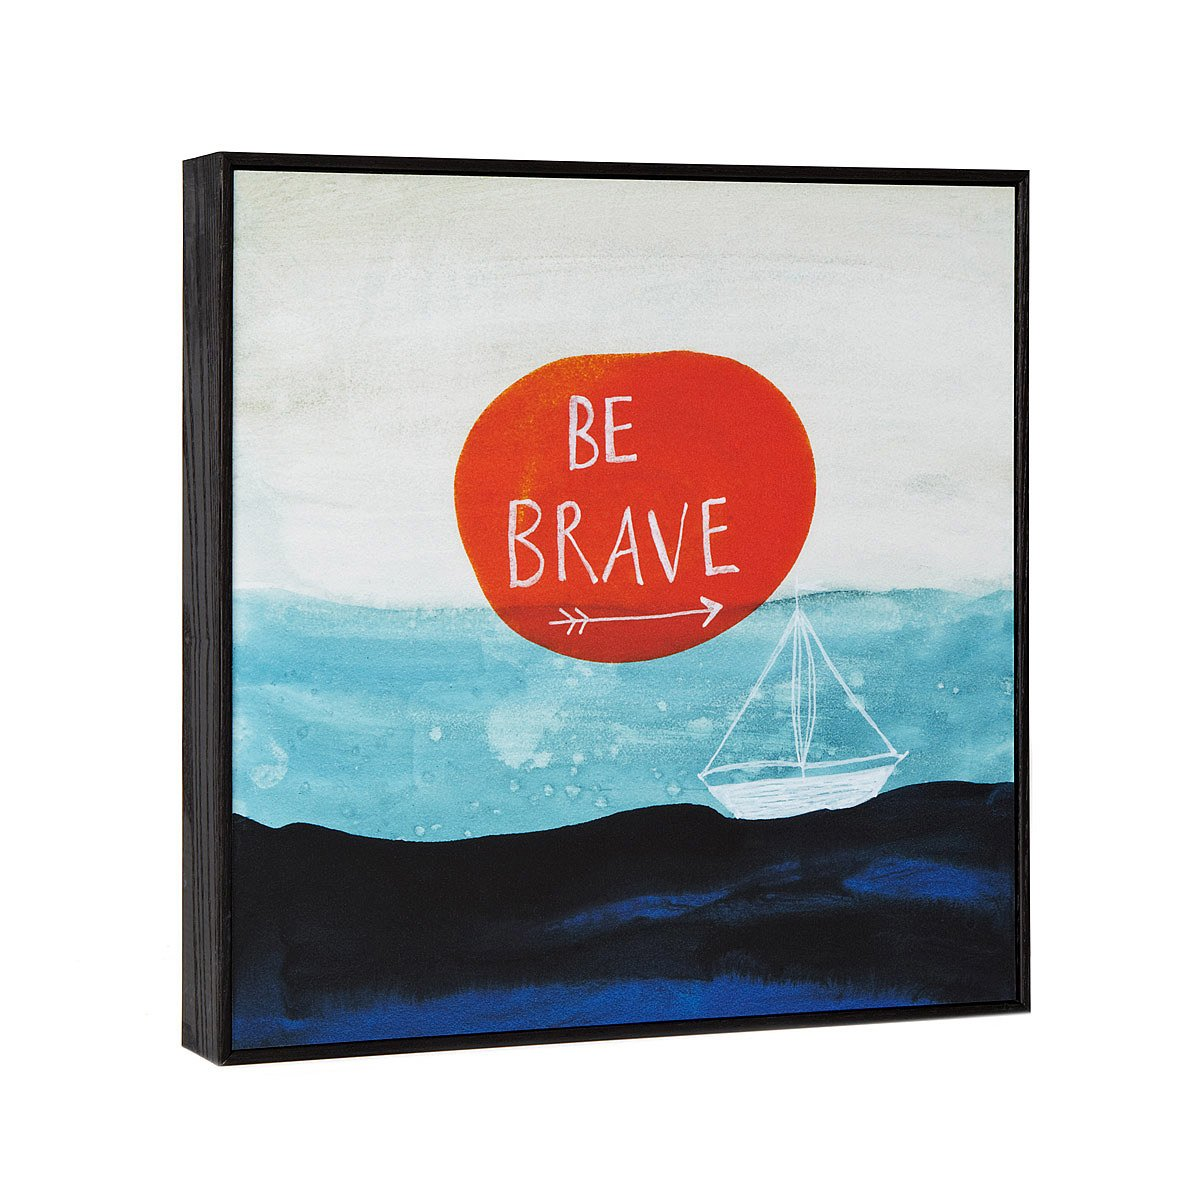 Be Brave Framed Art Block | inspirational art | UncommonGoods